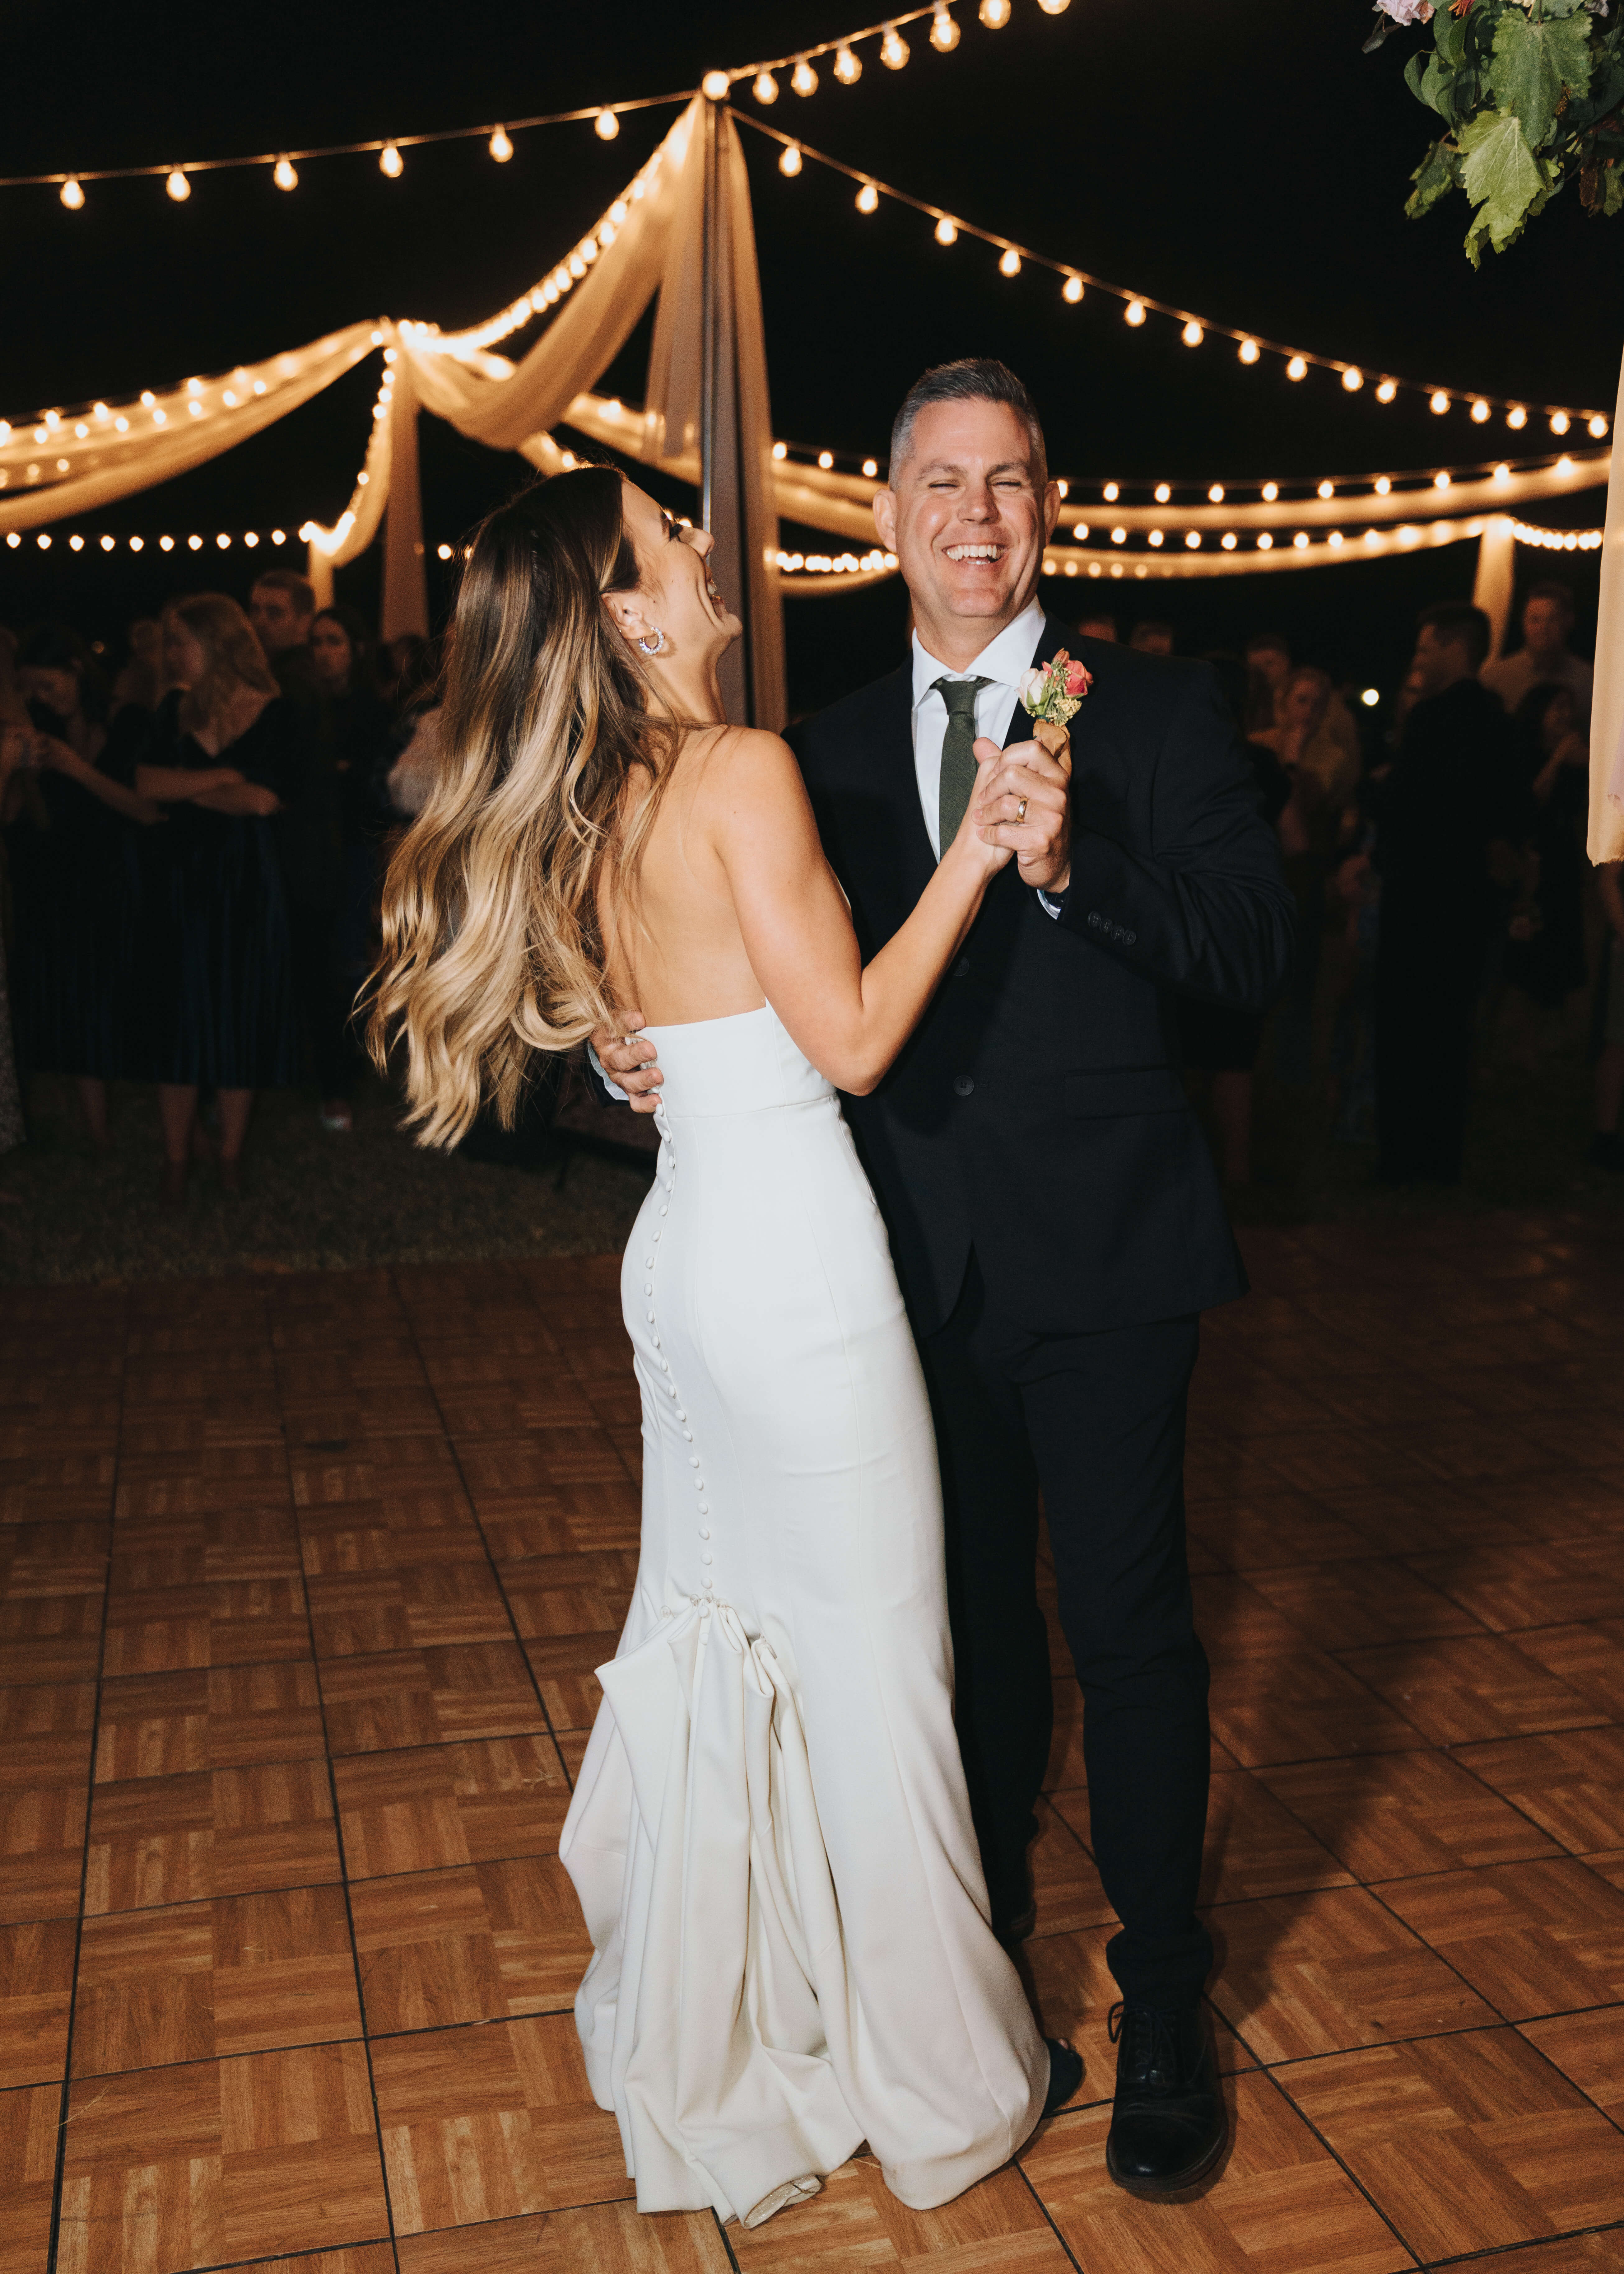 laughing daddy daughter first dance wedding photo